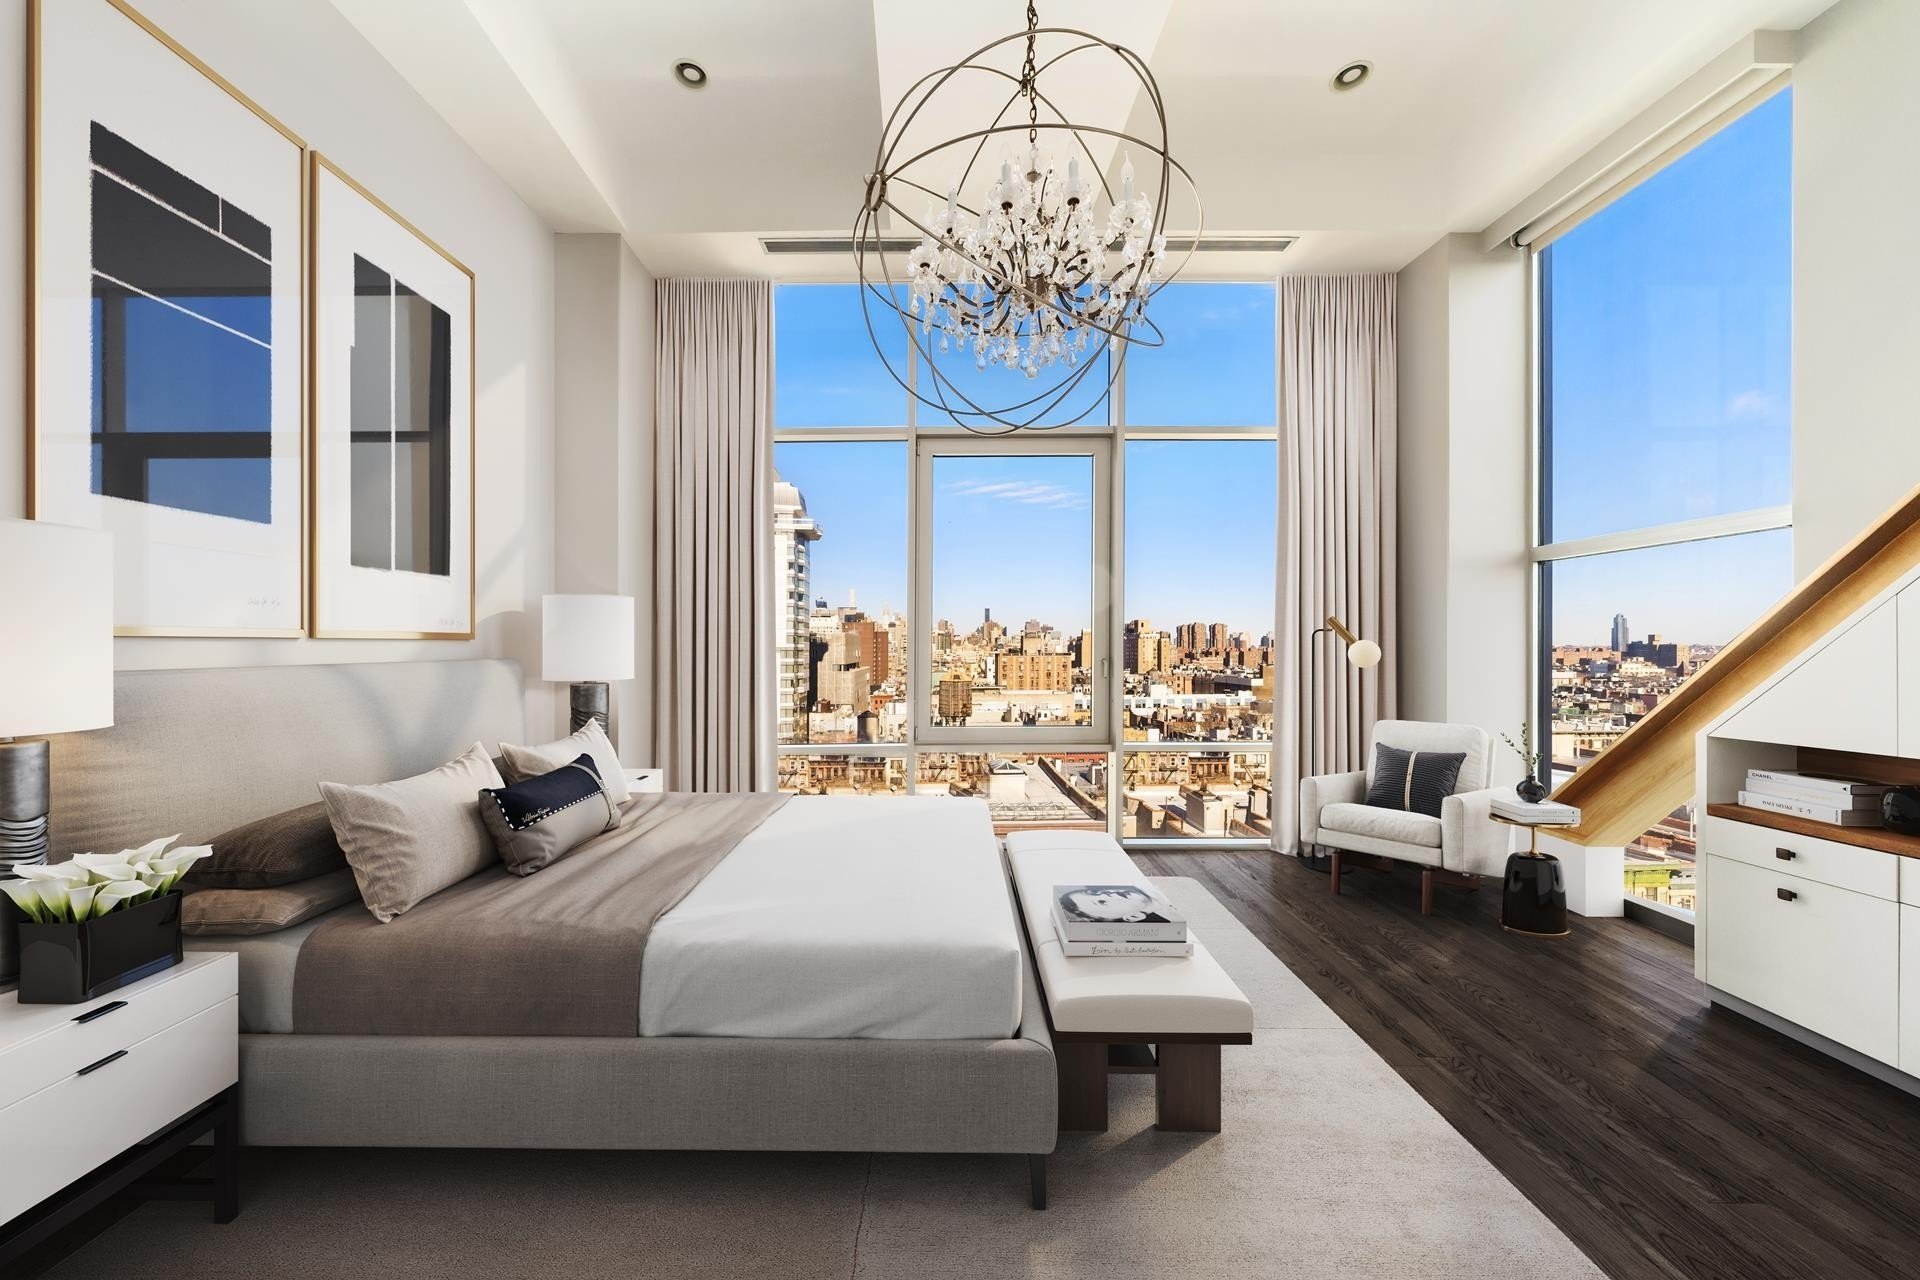 Condominium for Sale at Scarano, 52 E 4TH ST , 9 East Village, New York, NY 10003